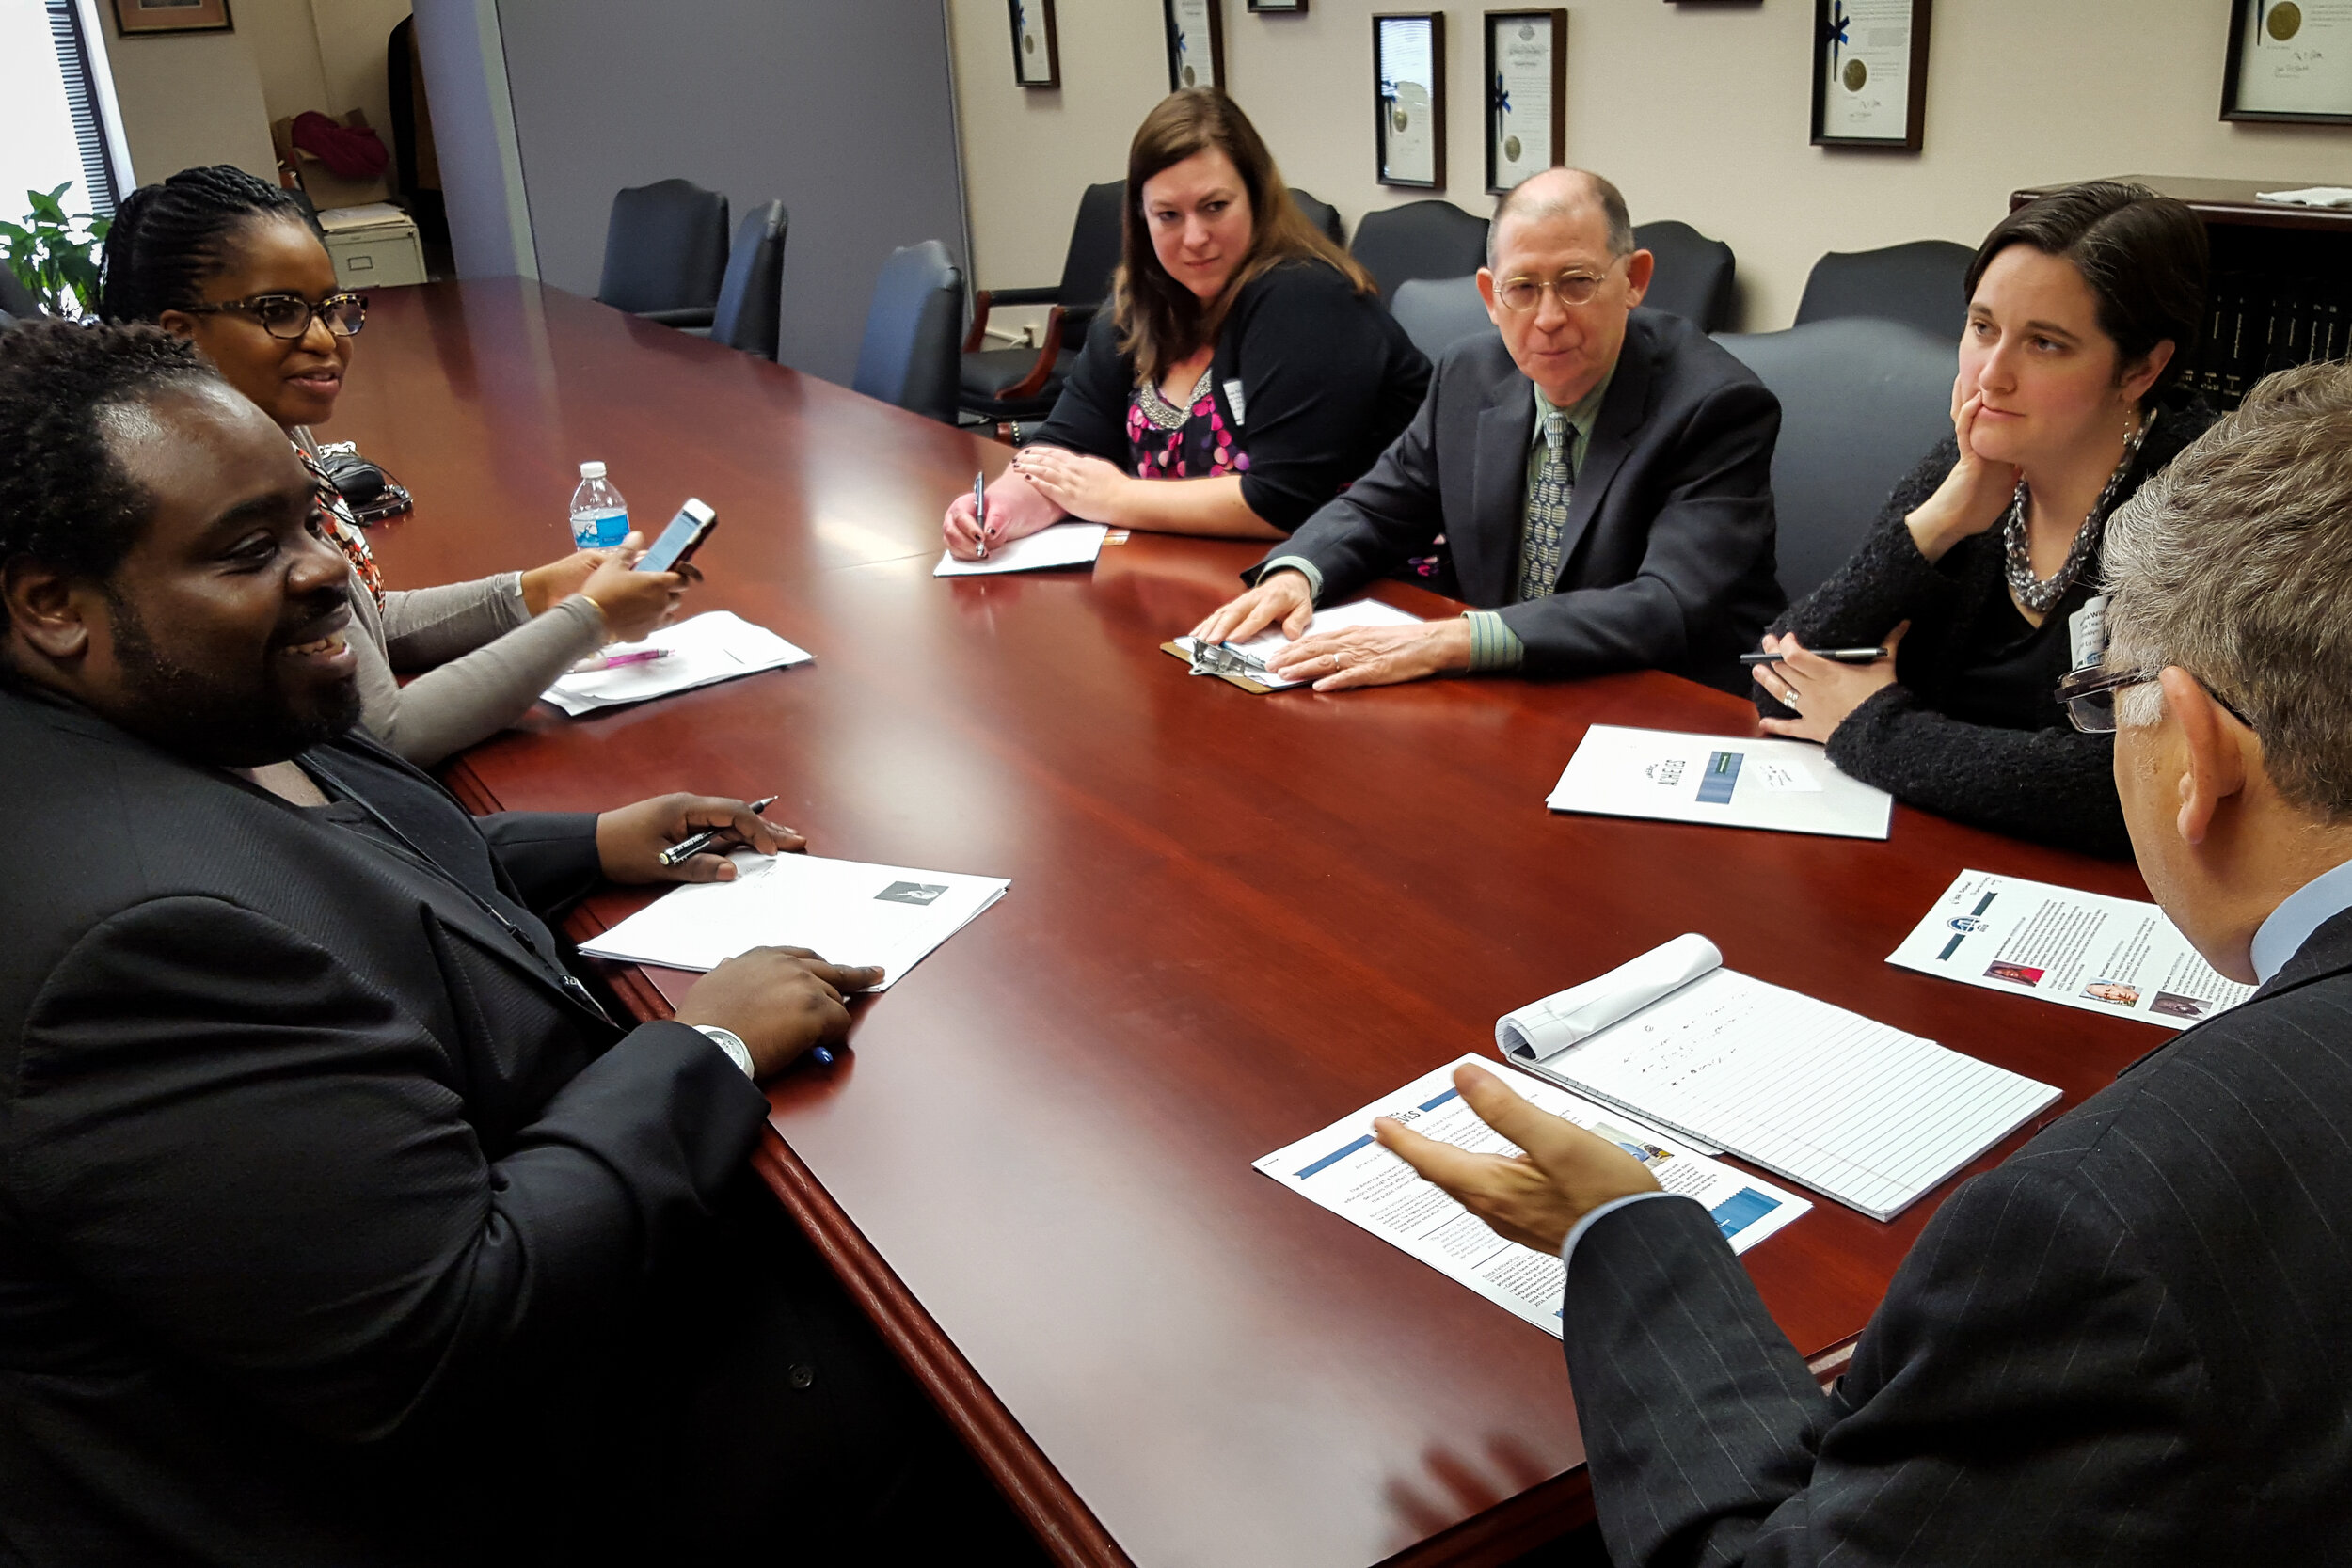 New York Policy Fellows met with a state legislator in Albany to advocate for their schools and students.